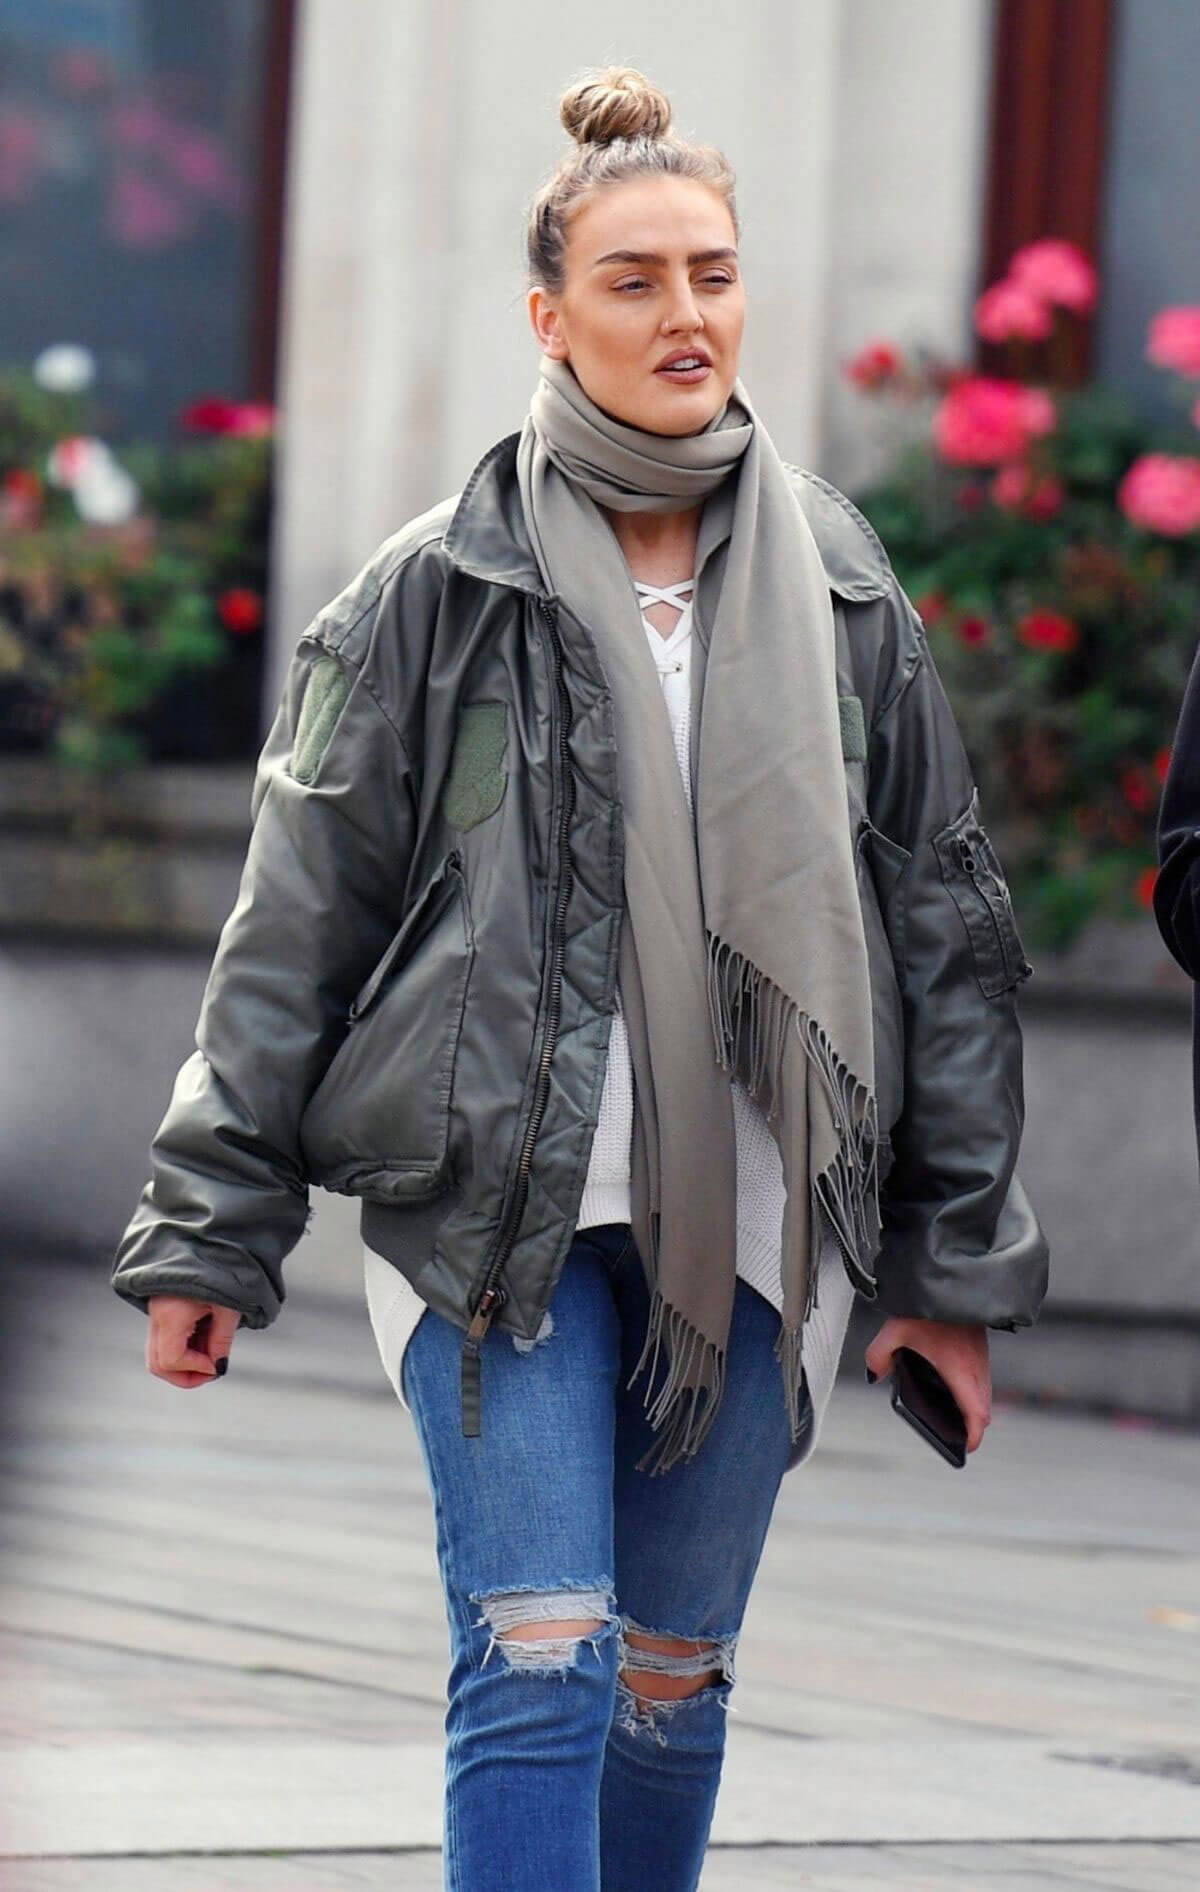 Perrie Edwards wears Ripped Jeans Out Shopping in London